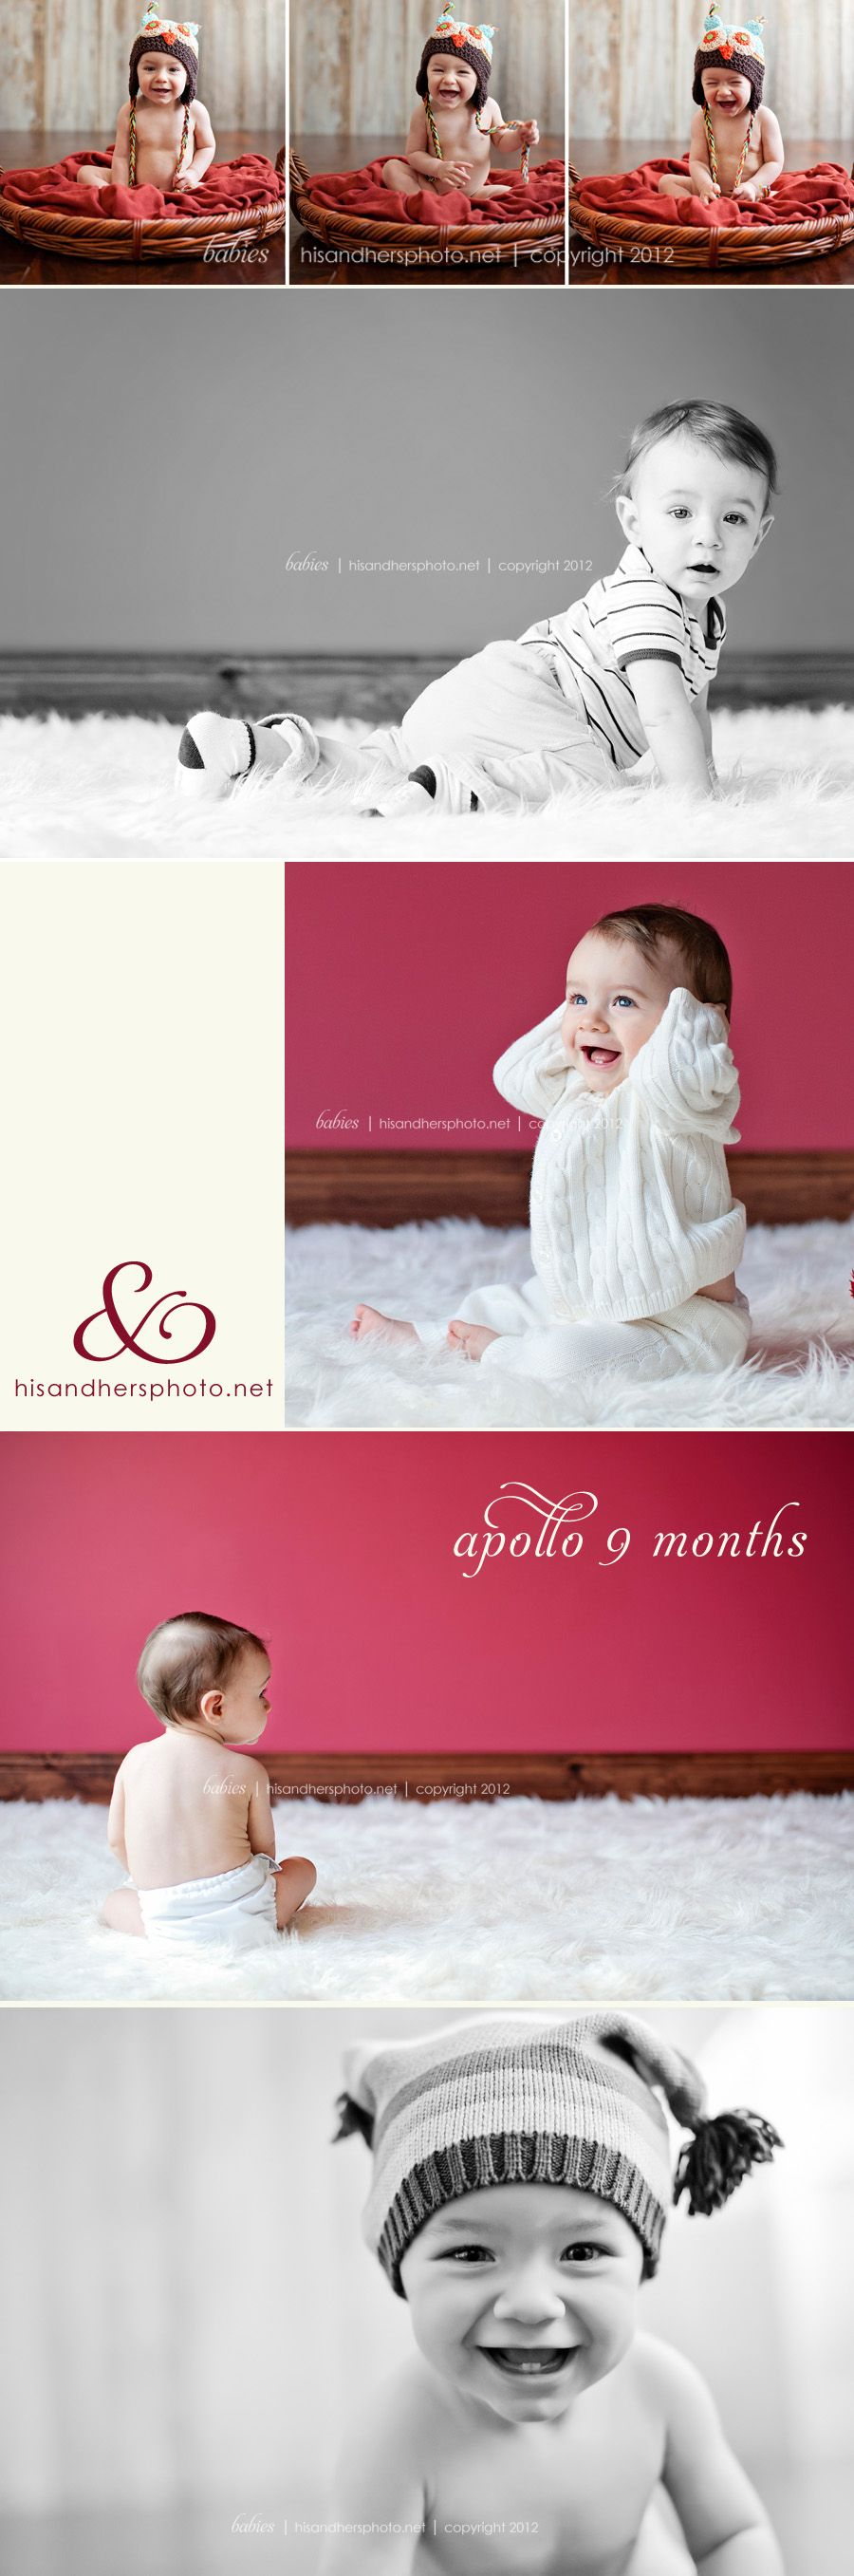 Des Moines, Iowa Baby Photographer | Apollo, 9 months old